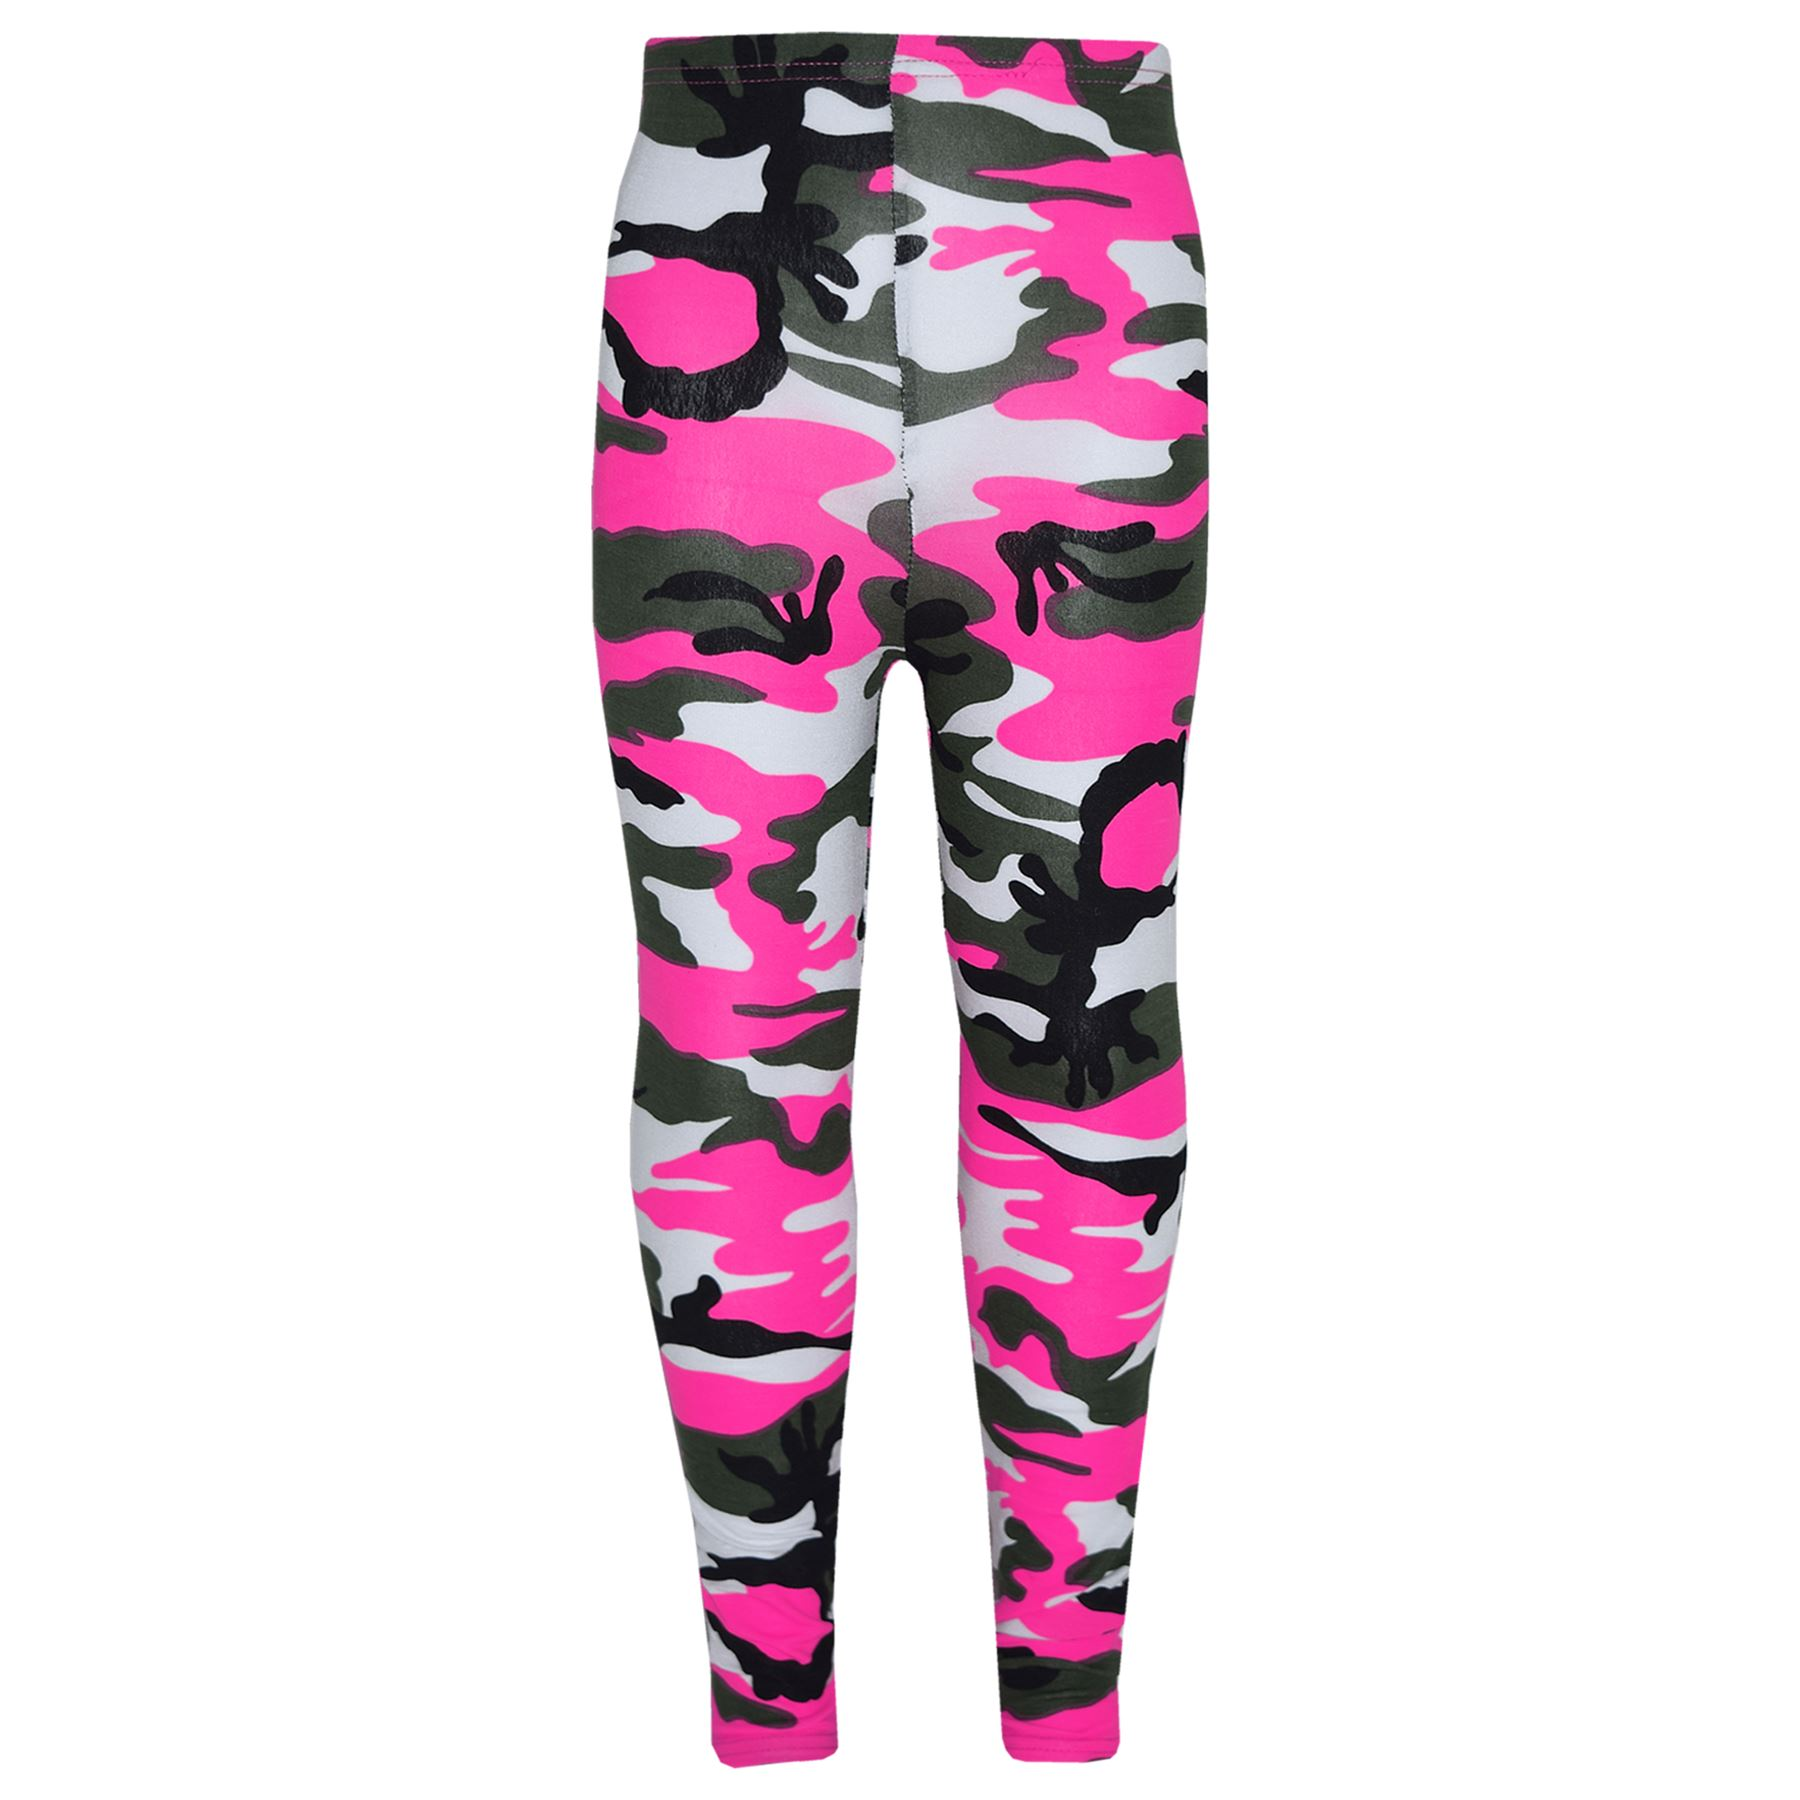 Kids Girls NYC Camouflage Trendy Crop Top /& Fashion Legging Outfit Set 7-13 Year